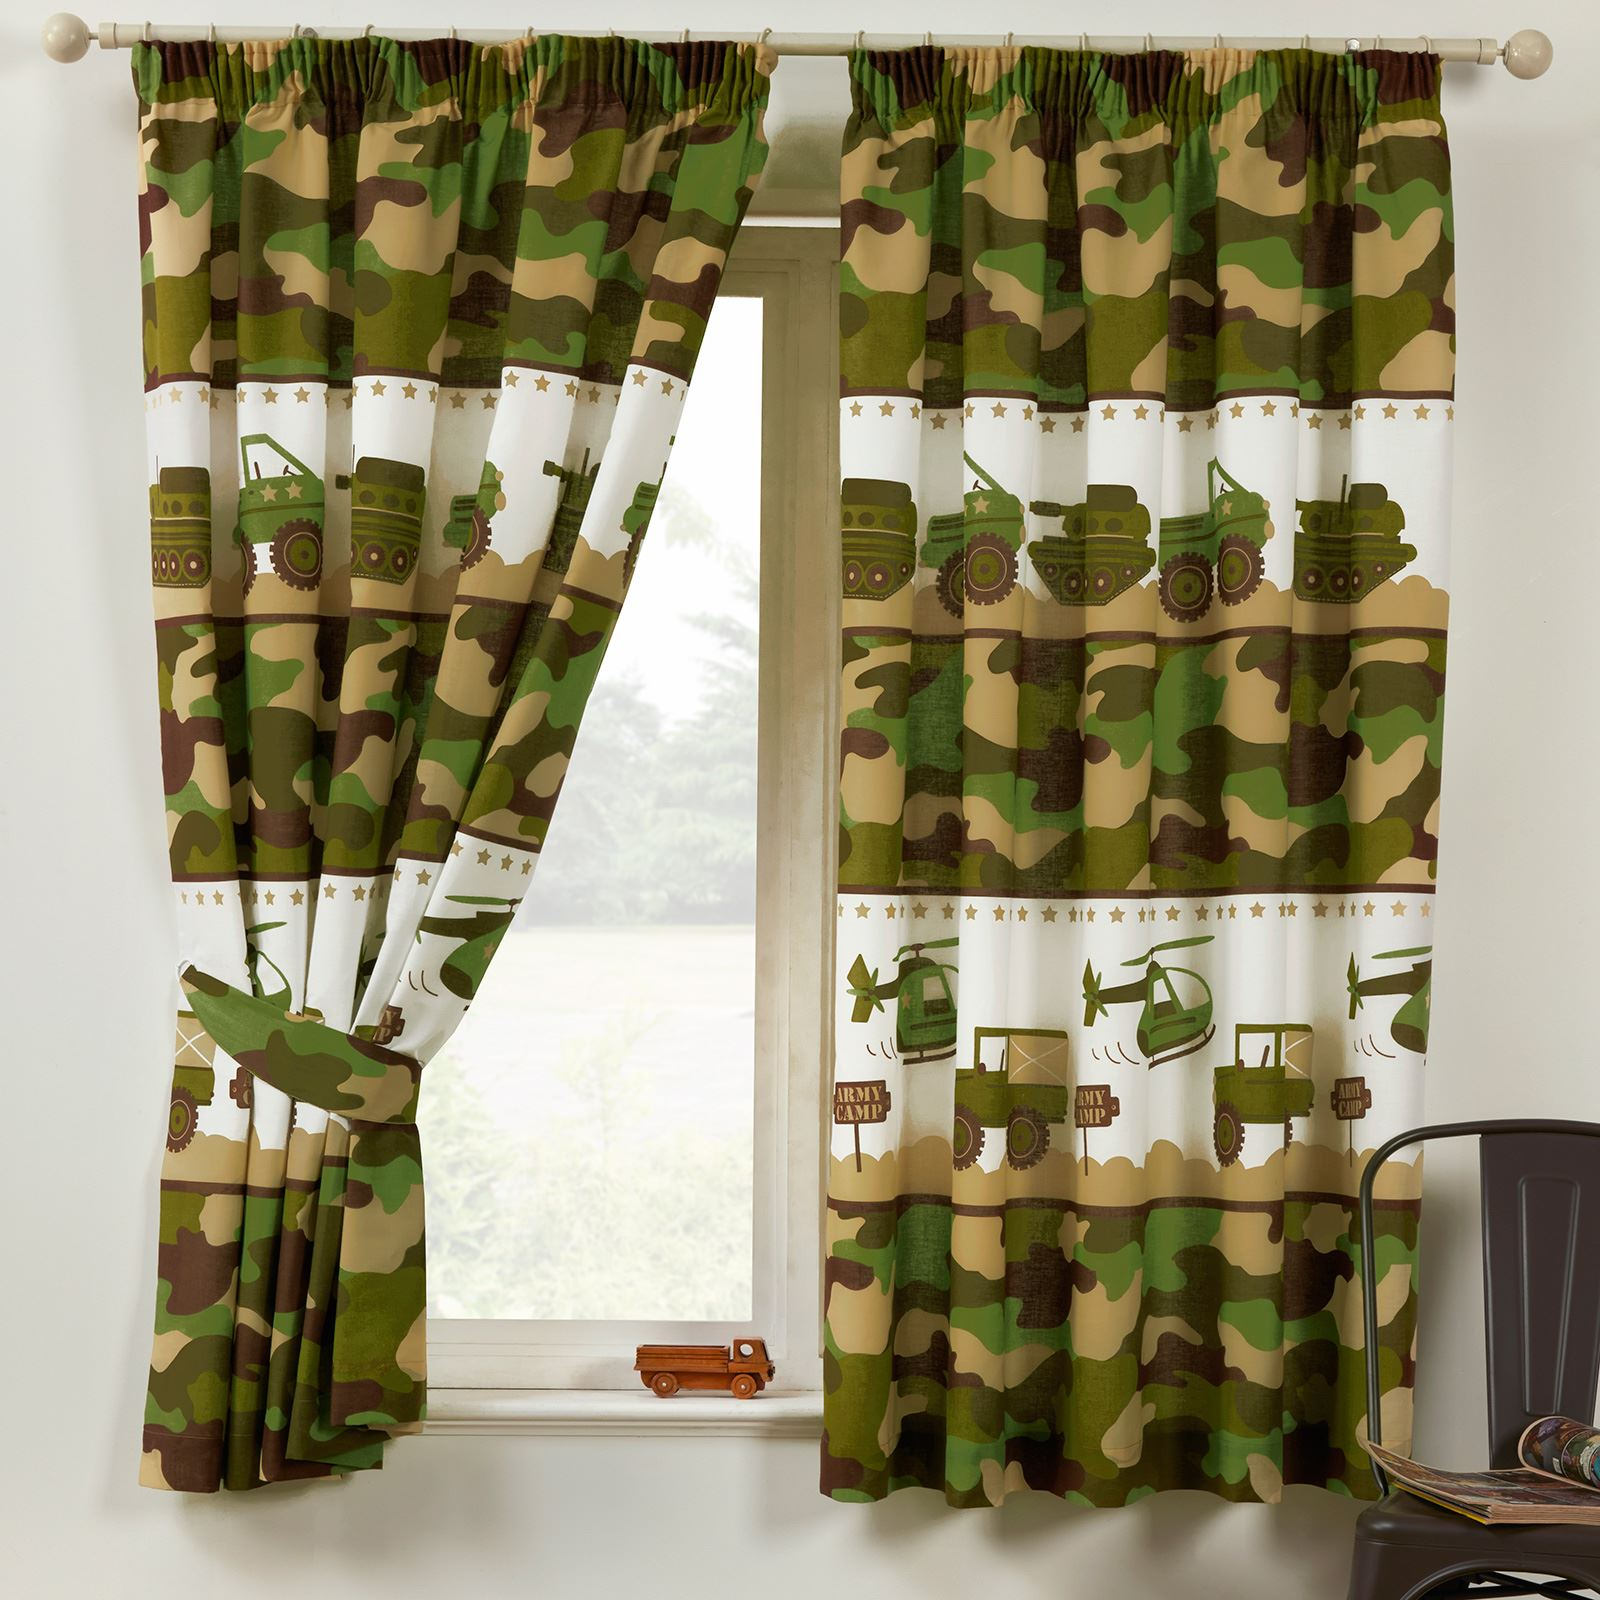 curtains window hemp a email x tabbed organic tab curtain draperies htm button friend photo larger treatments p